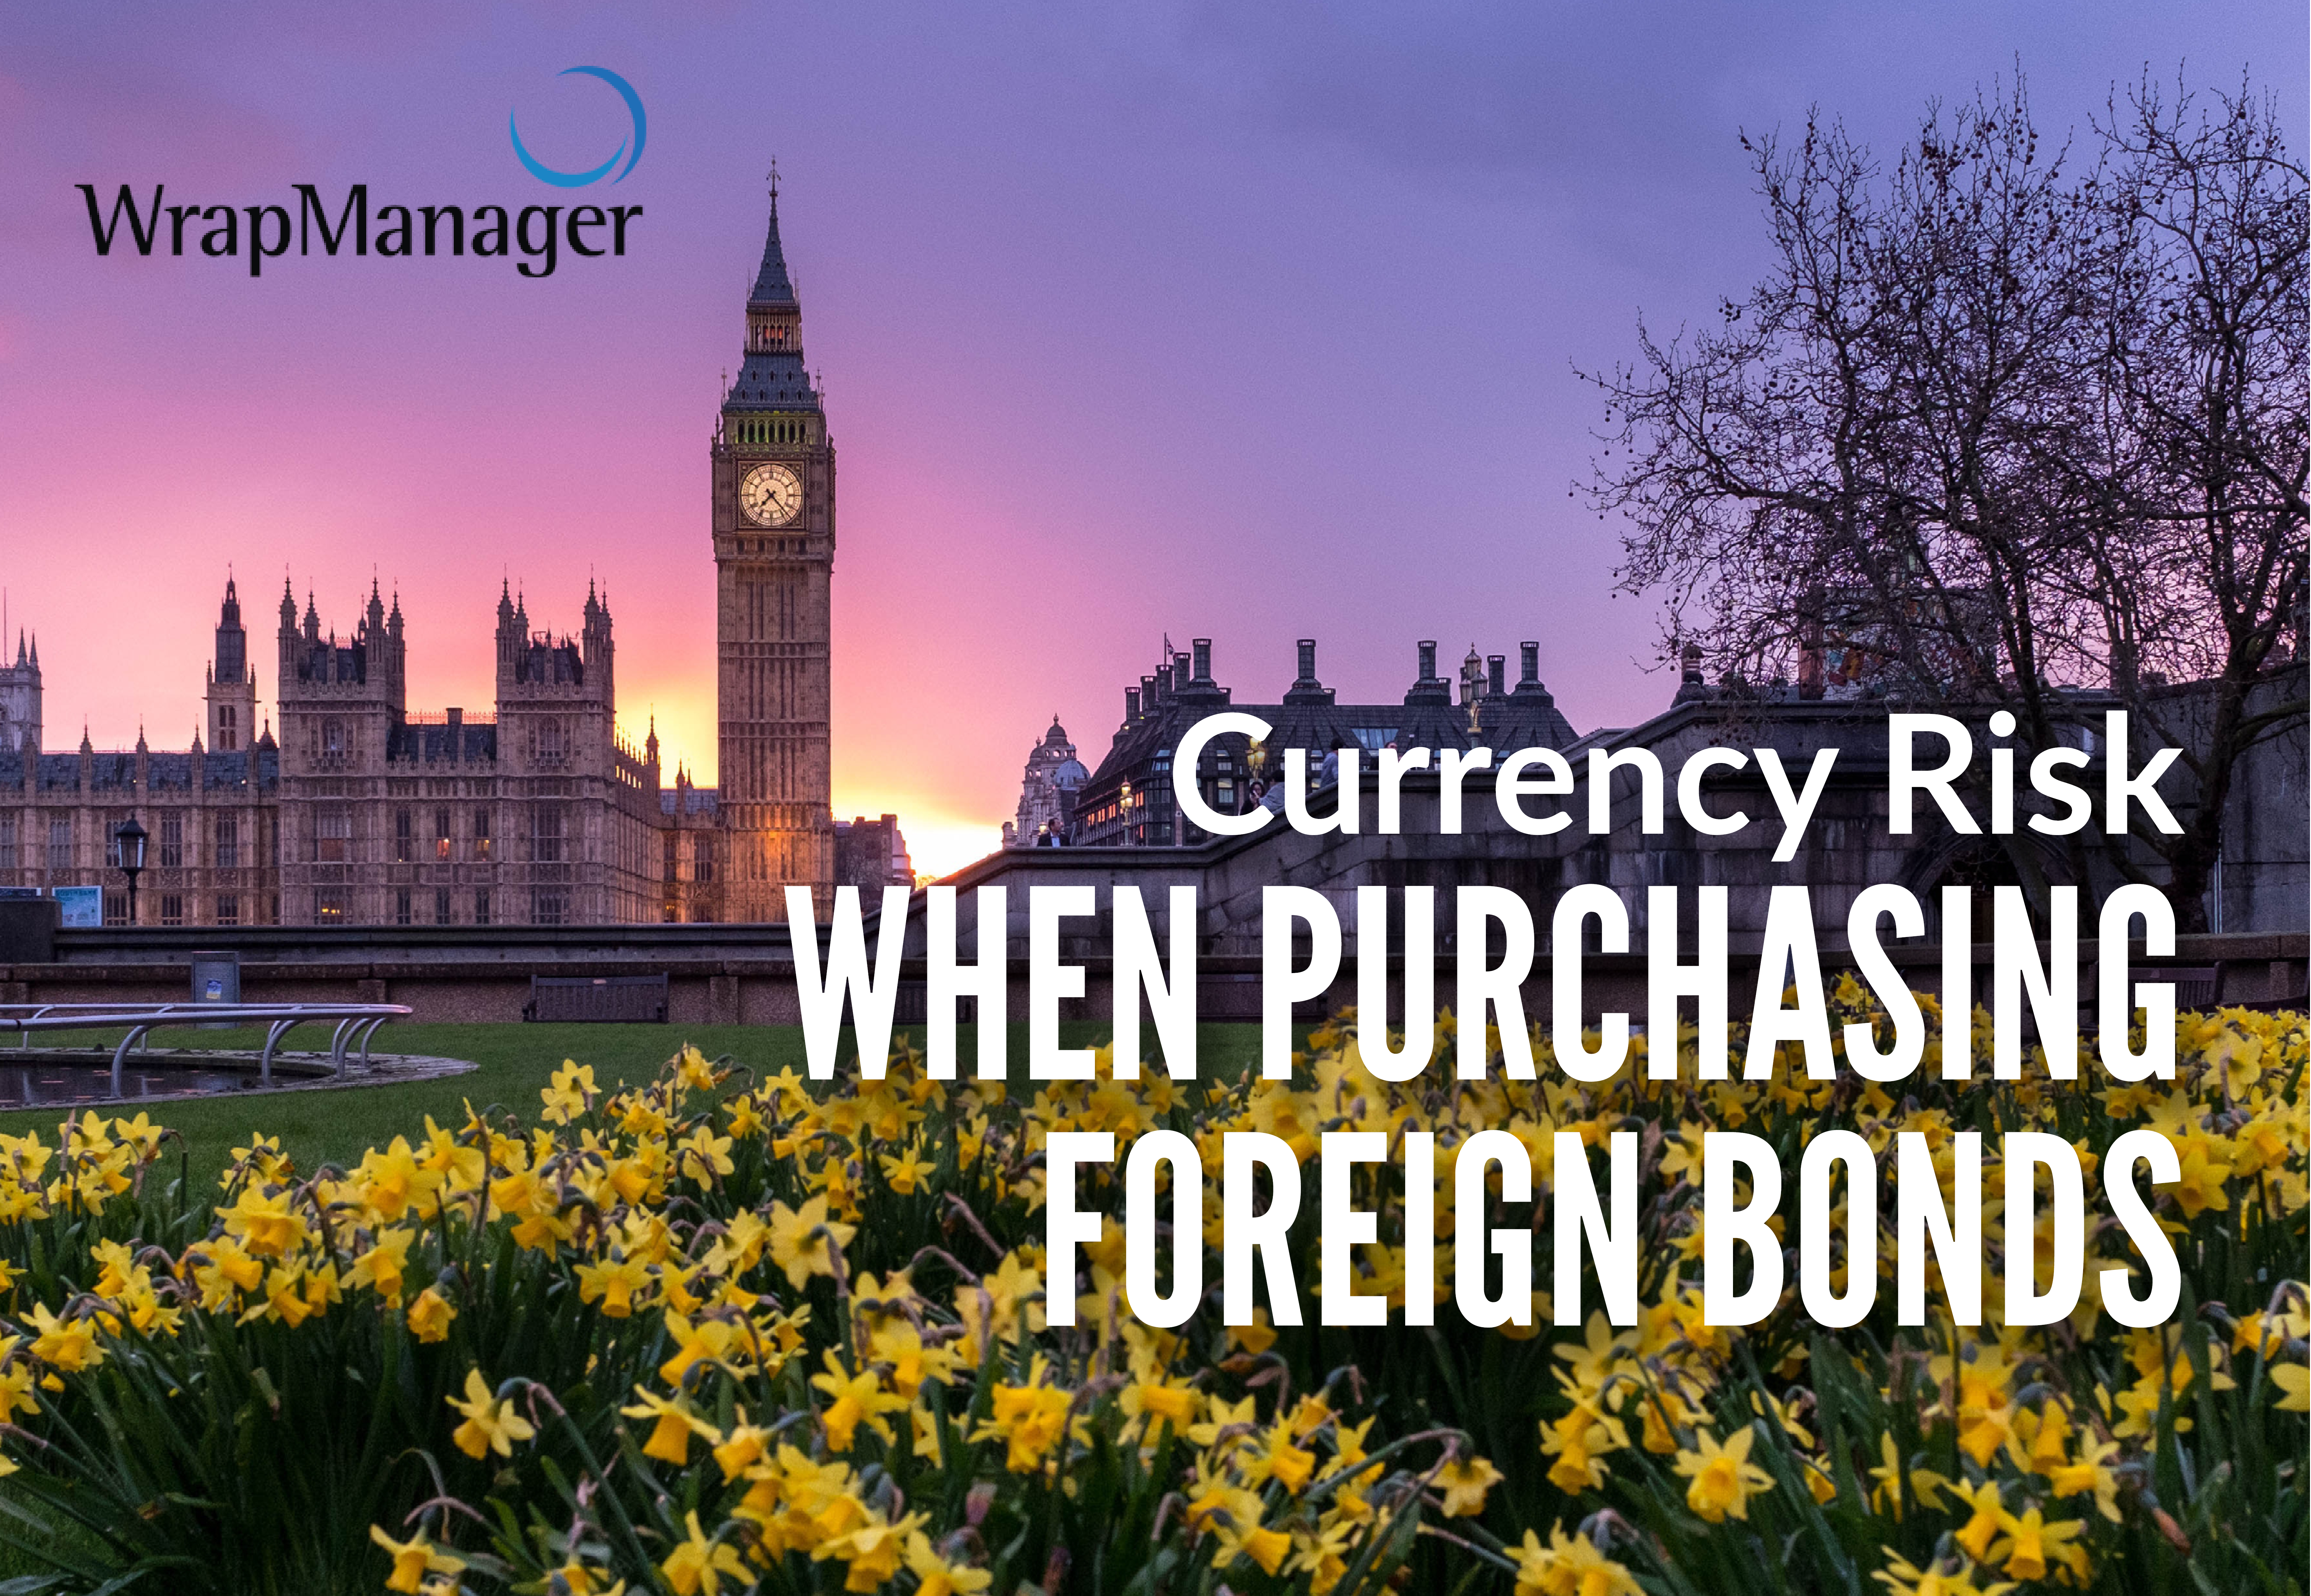 How Does Exchange-Rate Risk Impact the Purchase and Coupon Payments of Foreign Bonds? – Doug's Quiz Corner